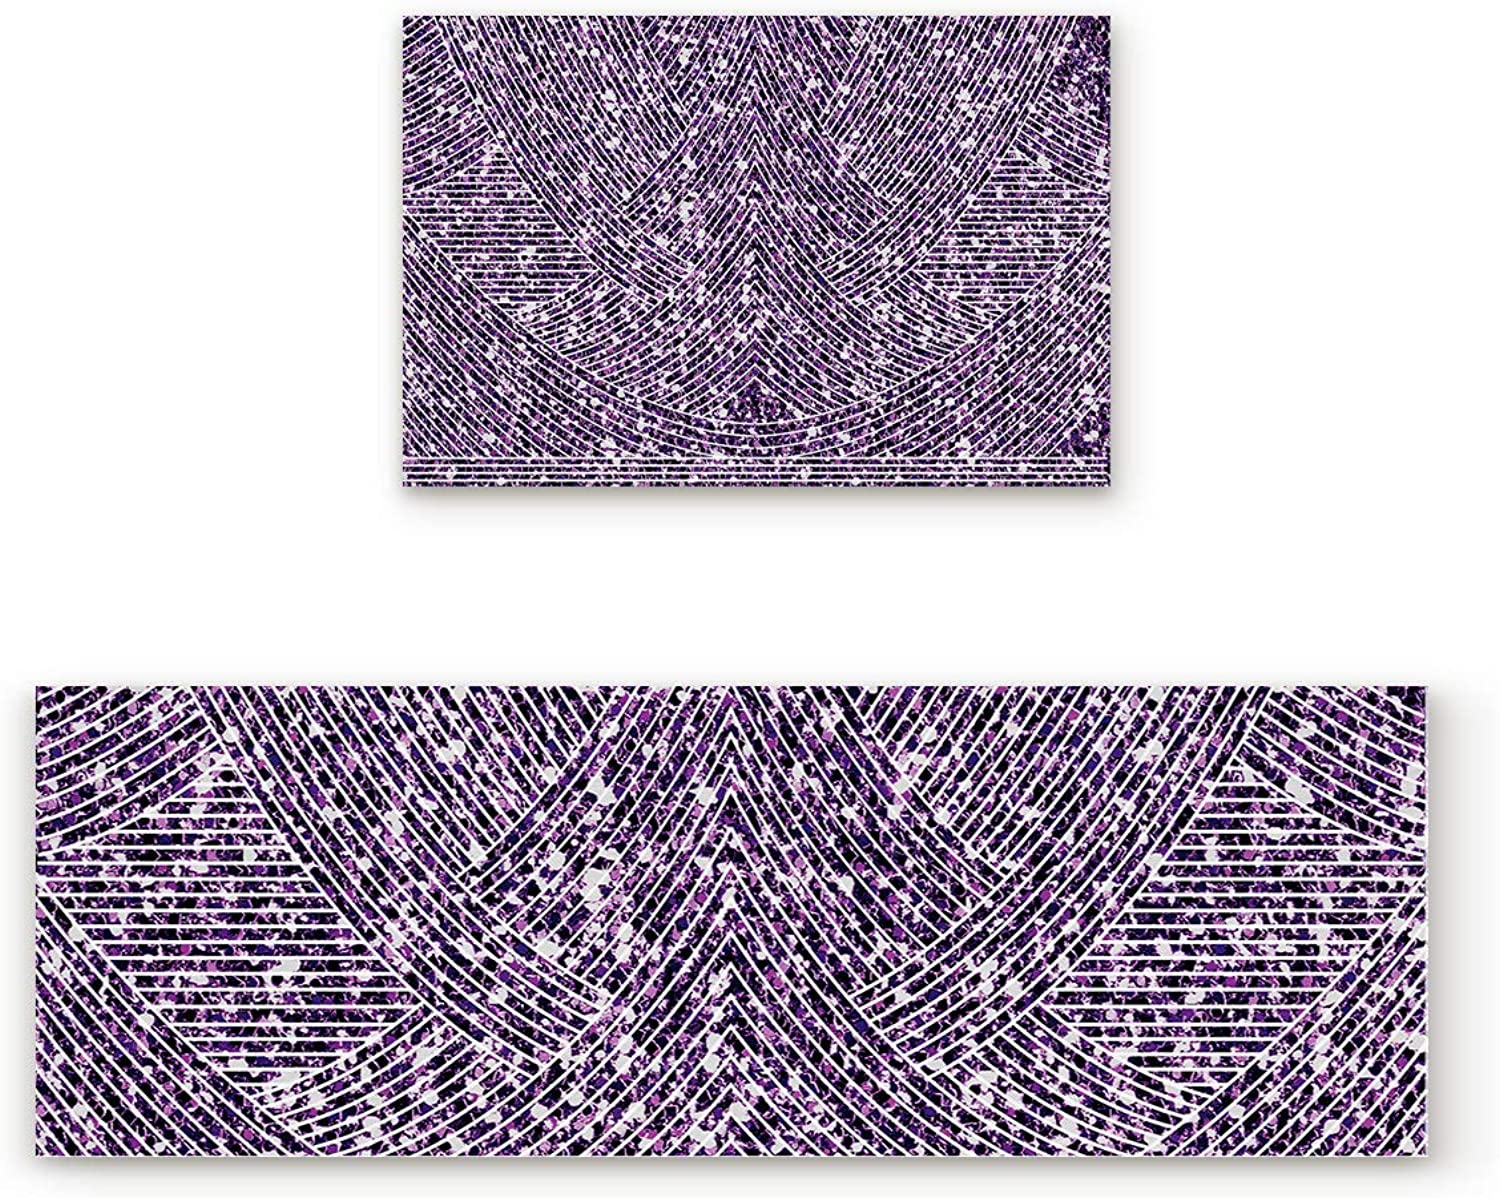 Fantasy Star Kitchen Rugs Sets 2 Piece Floor Mats Lines Purple Marble Doormat Non-Slip Rubber Backing Area Rugs Washable Carpet Inside Door Mat Pad Sets (23.6  x 35.4 +23.6  x 70.9 )